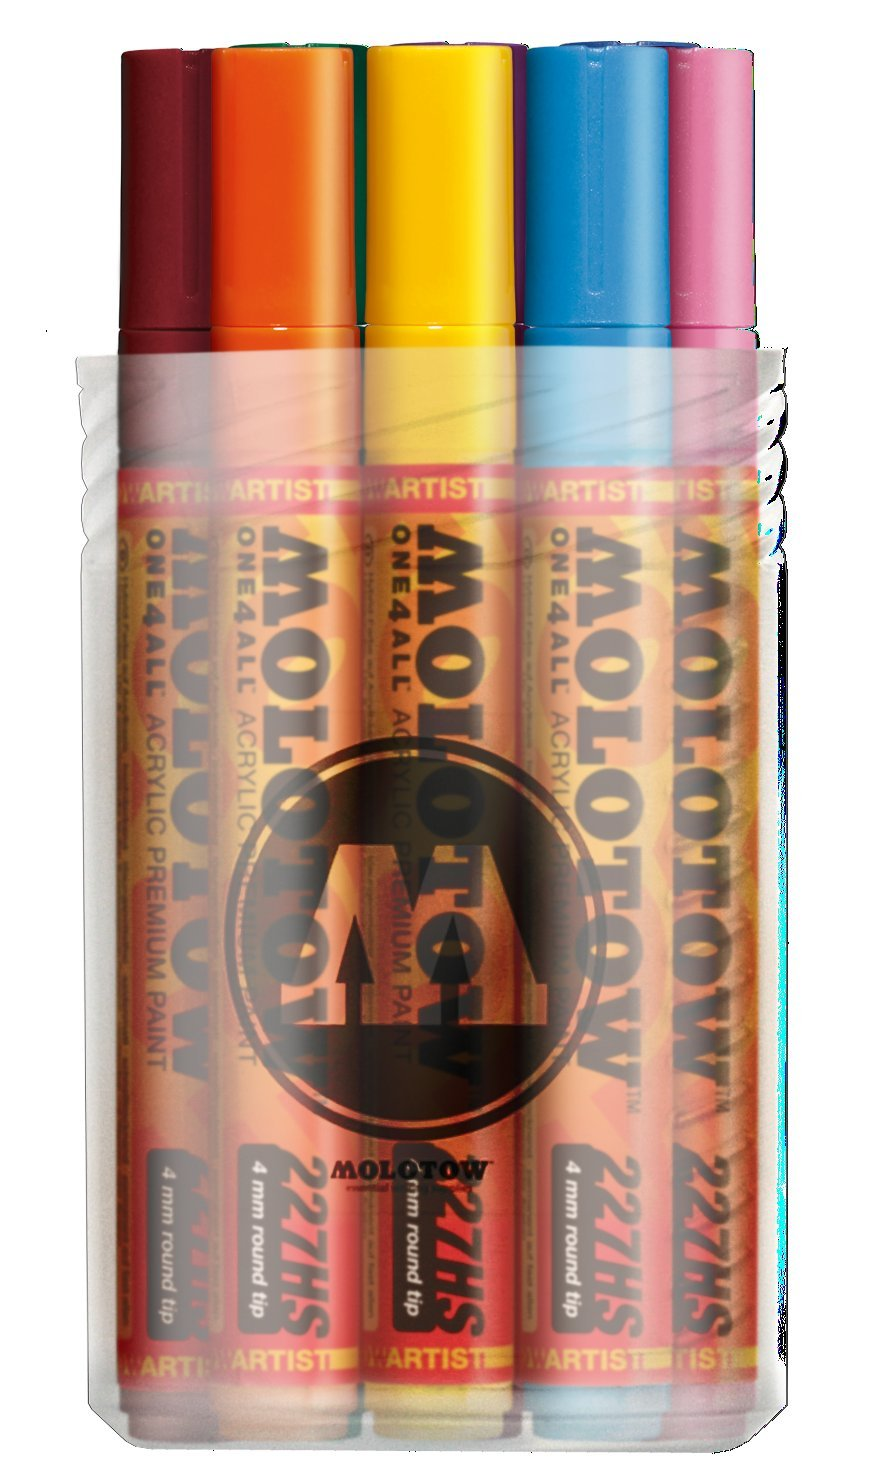 Molotow ONE4ALL Acrylic Paint Marker Set 1, 4mm, Assorted Colors, 12 Marker Set, 1 Set Each (200.153)